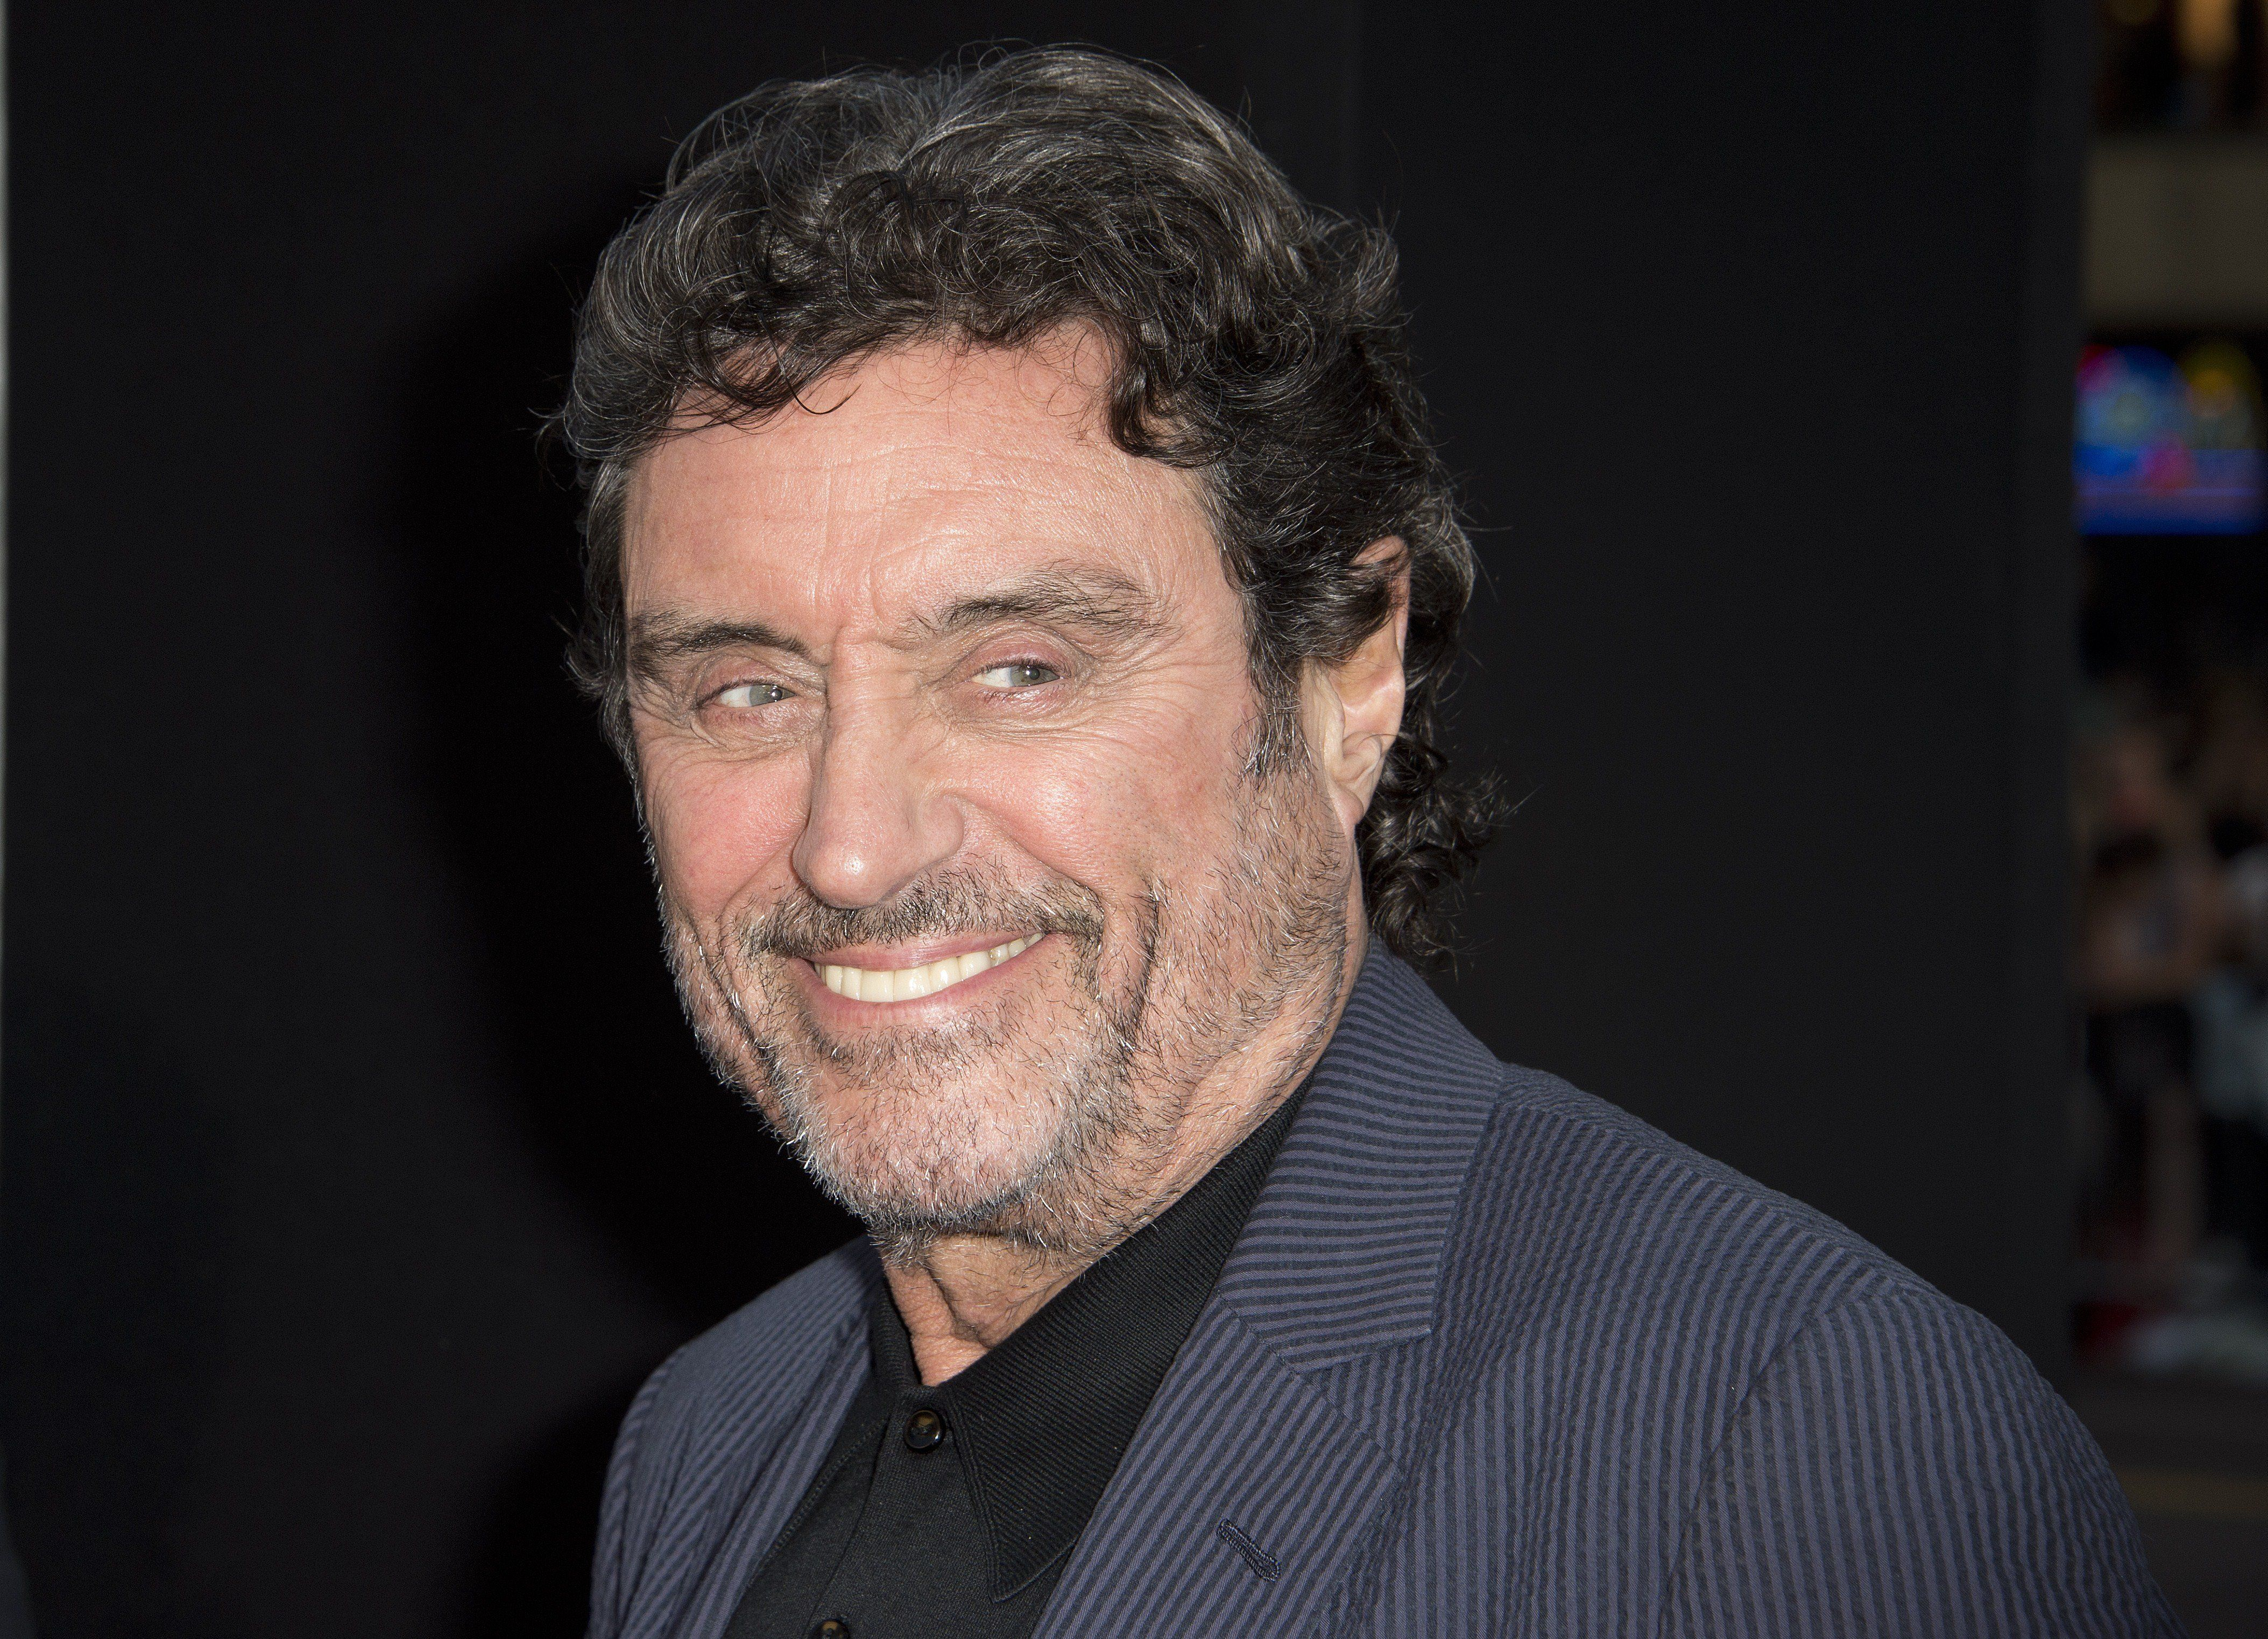 Actor Ian McShane attends the premiere of 'Hercules,' July 23, 2014 at TCL Chinese Theatre in Hollywood, California.  AFP PHOTO / Robyn Beck        (Photo credit should read ROBYN BECK/AFP/Getty Images)